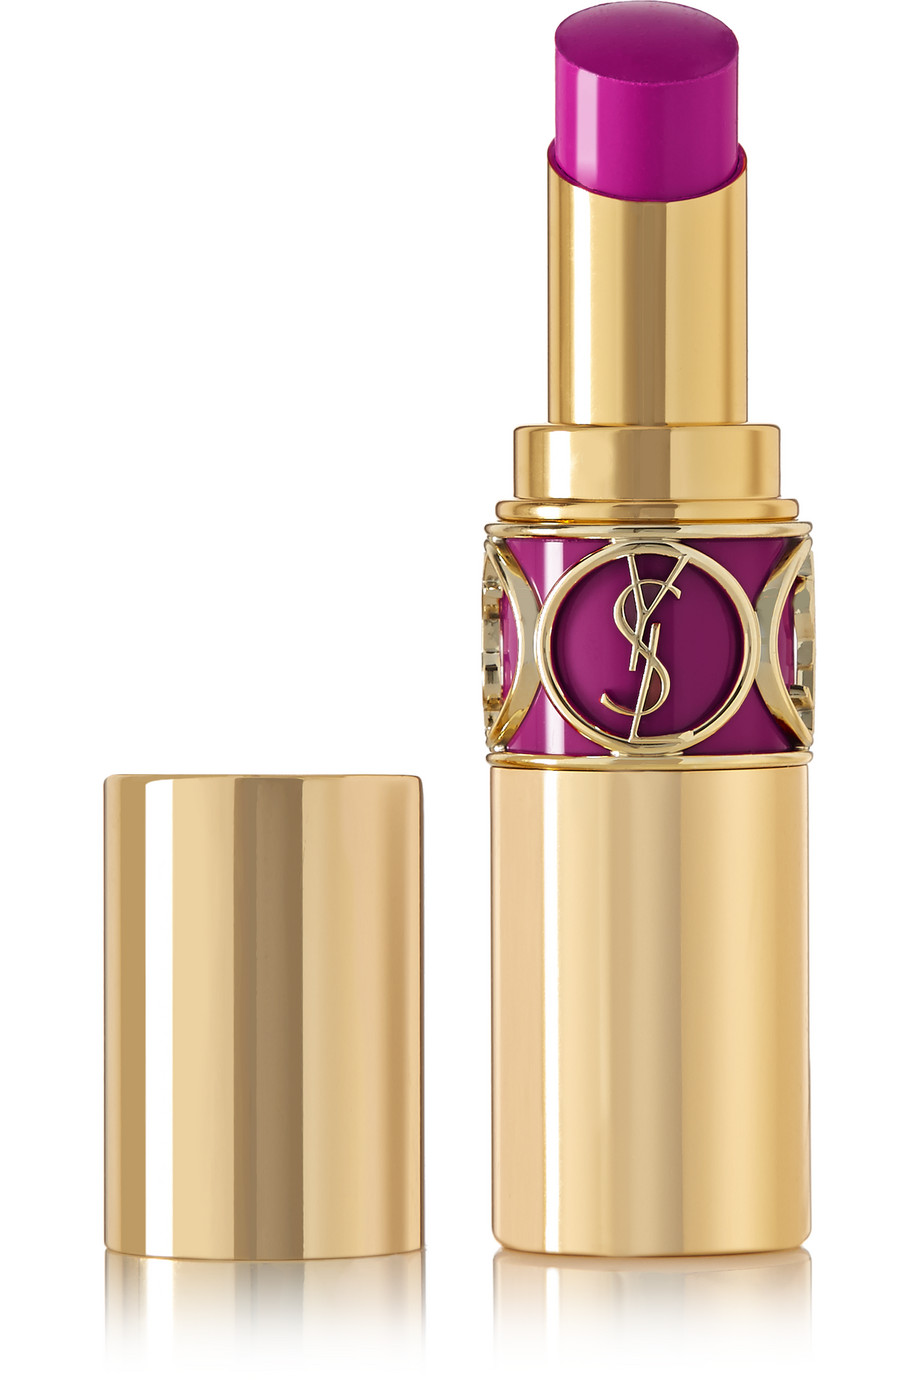 Rouge Volupté Shine - Fuchsia In Rage 19, by Yves Saint Laurent Beauty